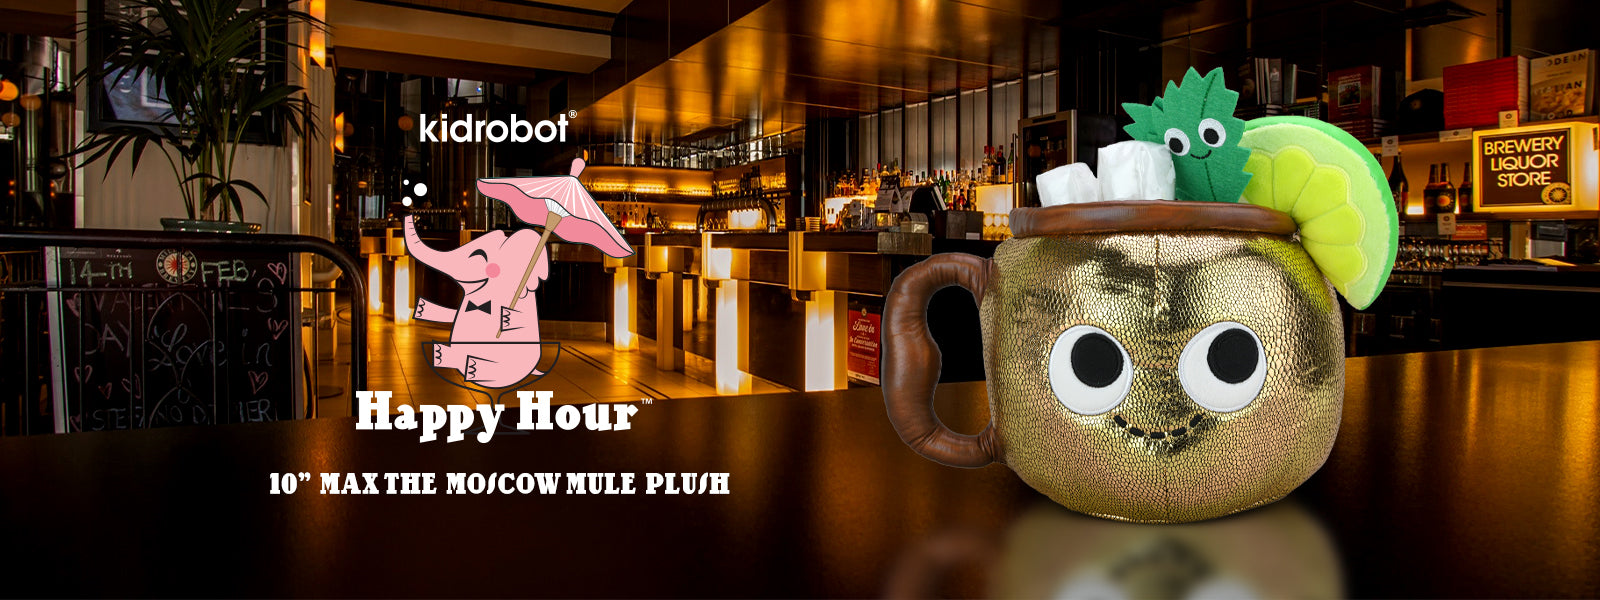 Happy Hour Cocktail Plush by Kidrobot - Adult Themed Plush Pillows featuring Moscow Mules and Pina Coladas